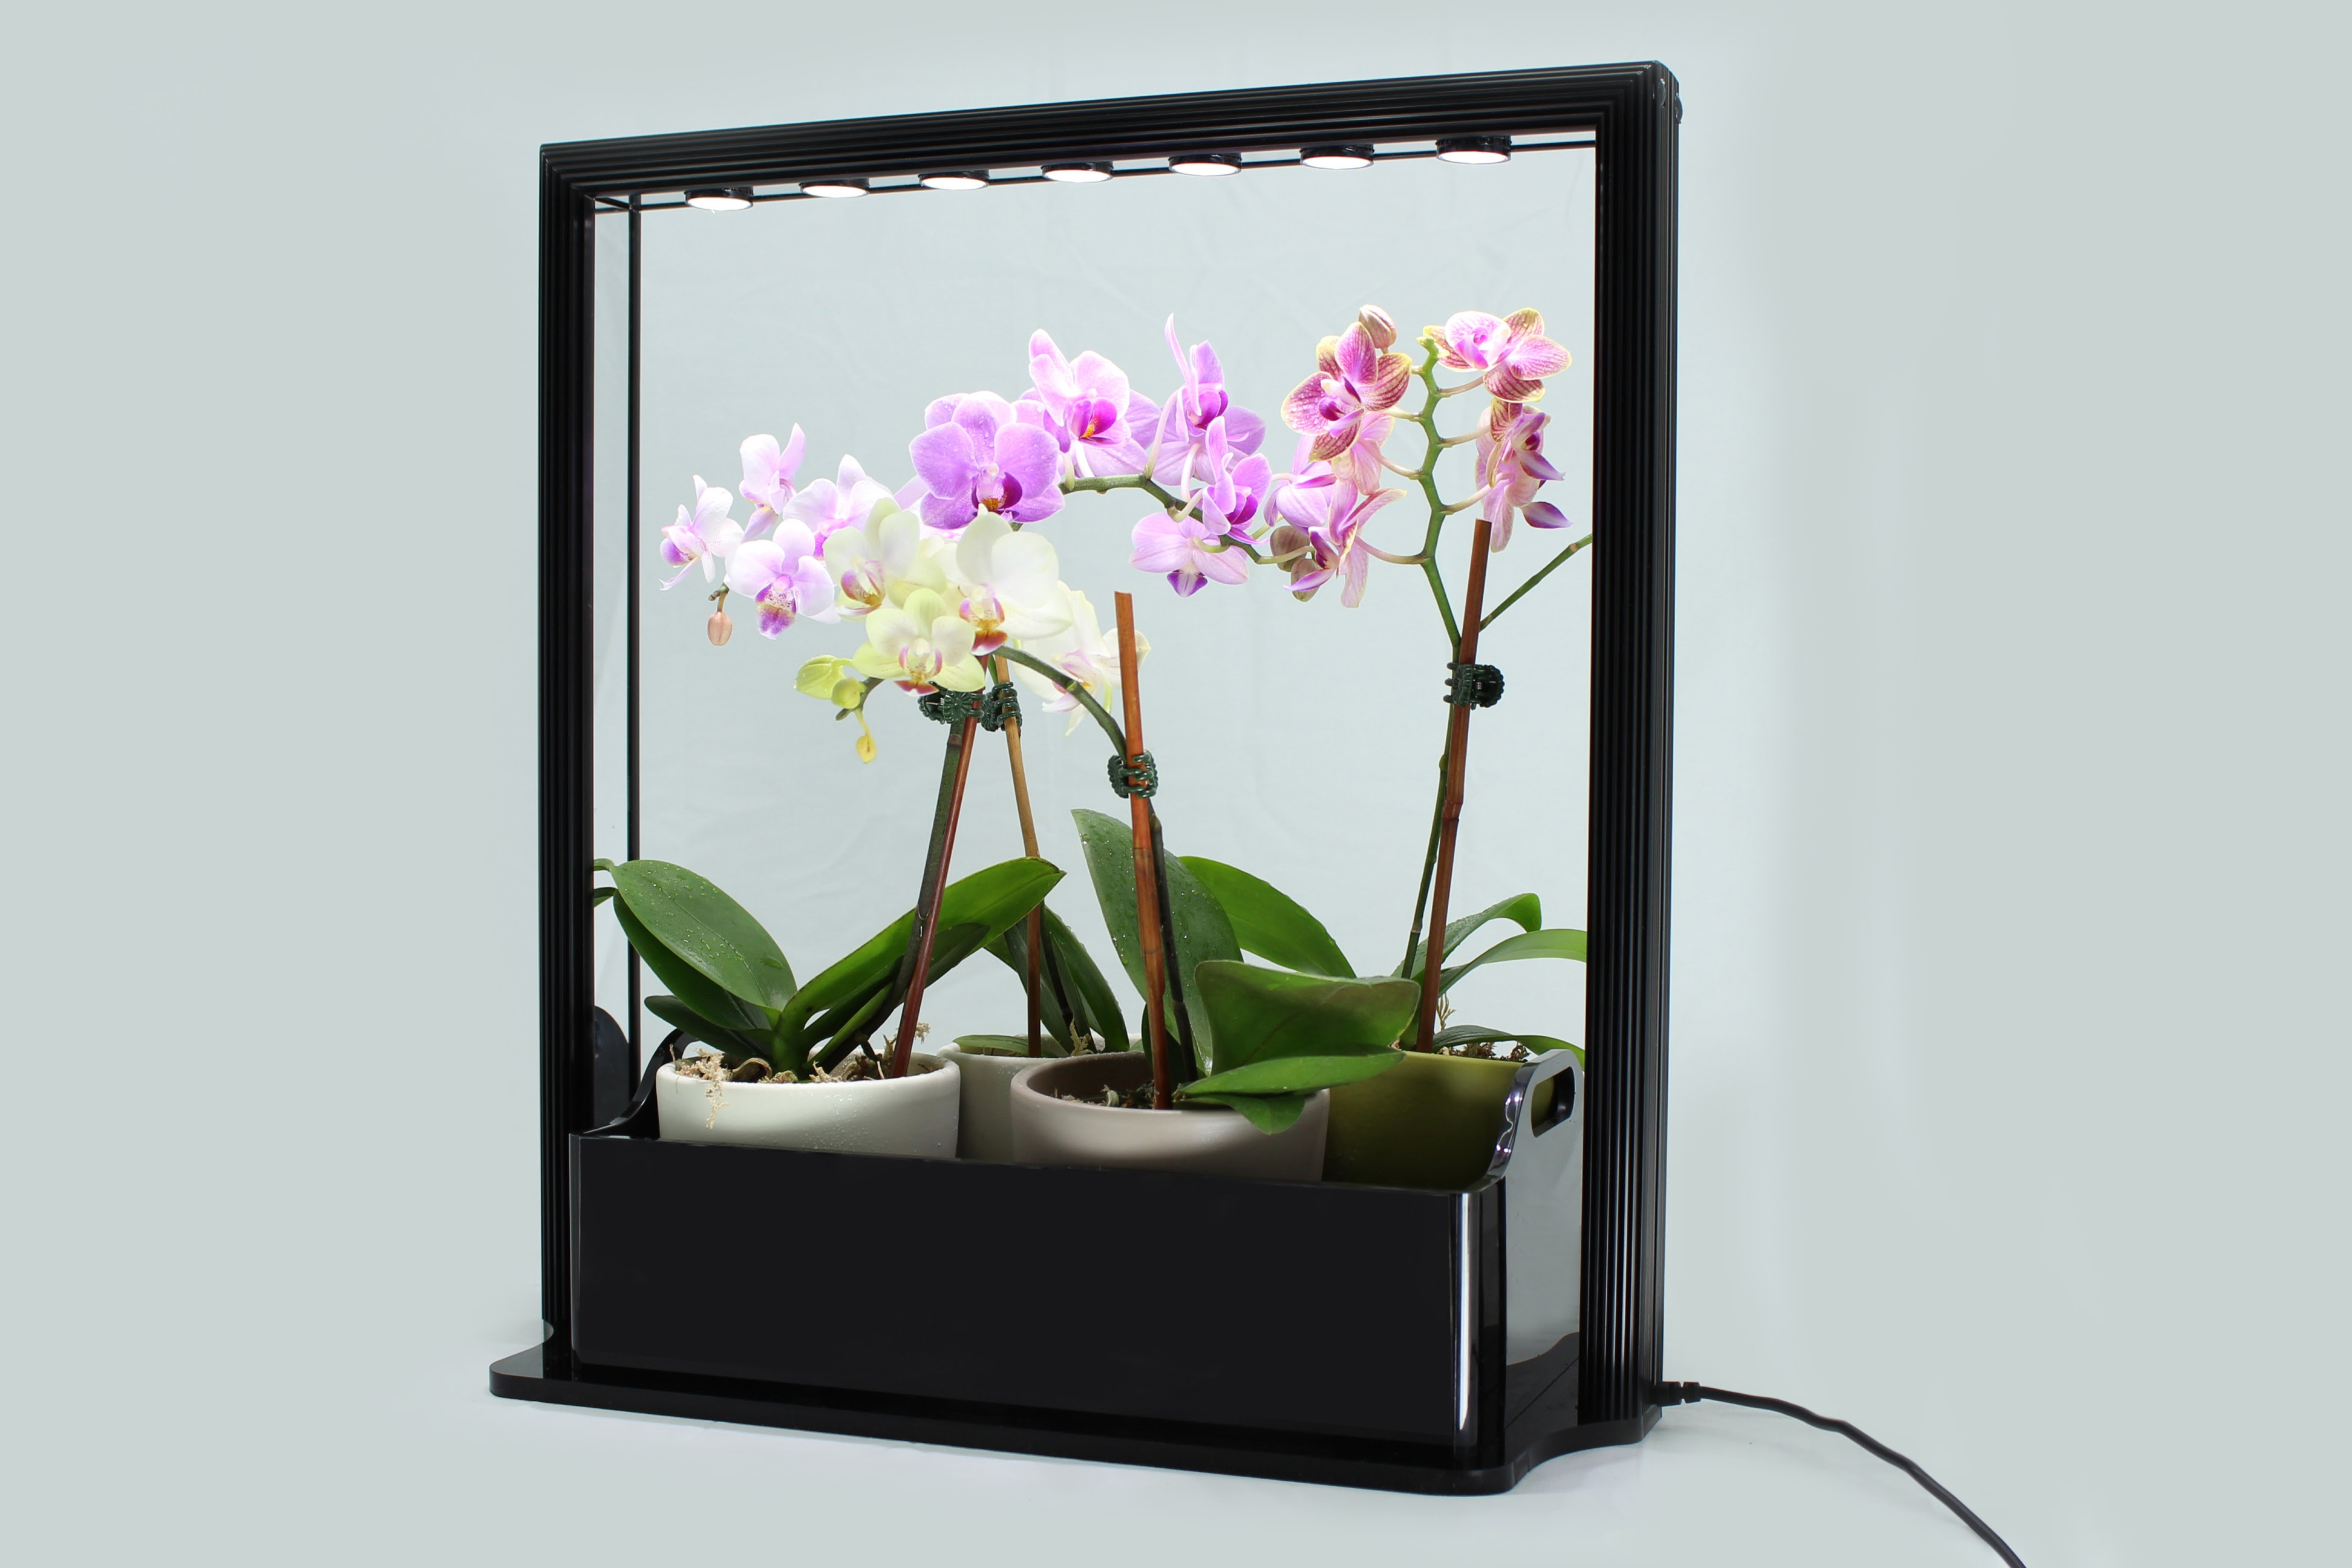 New LED Mini Garden from InHomeGardening.com is a Great Gift for the Green Thumb